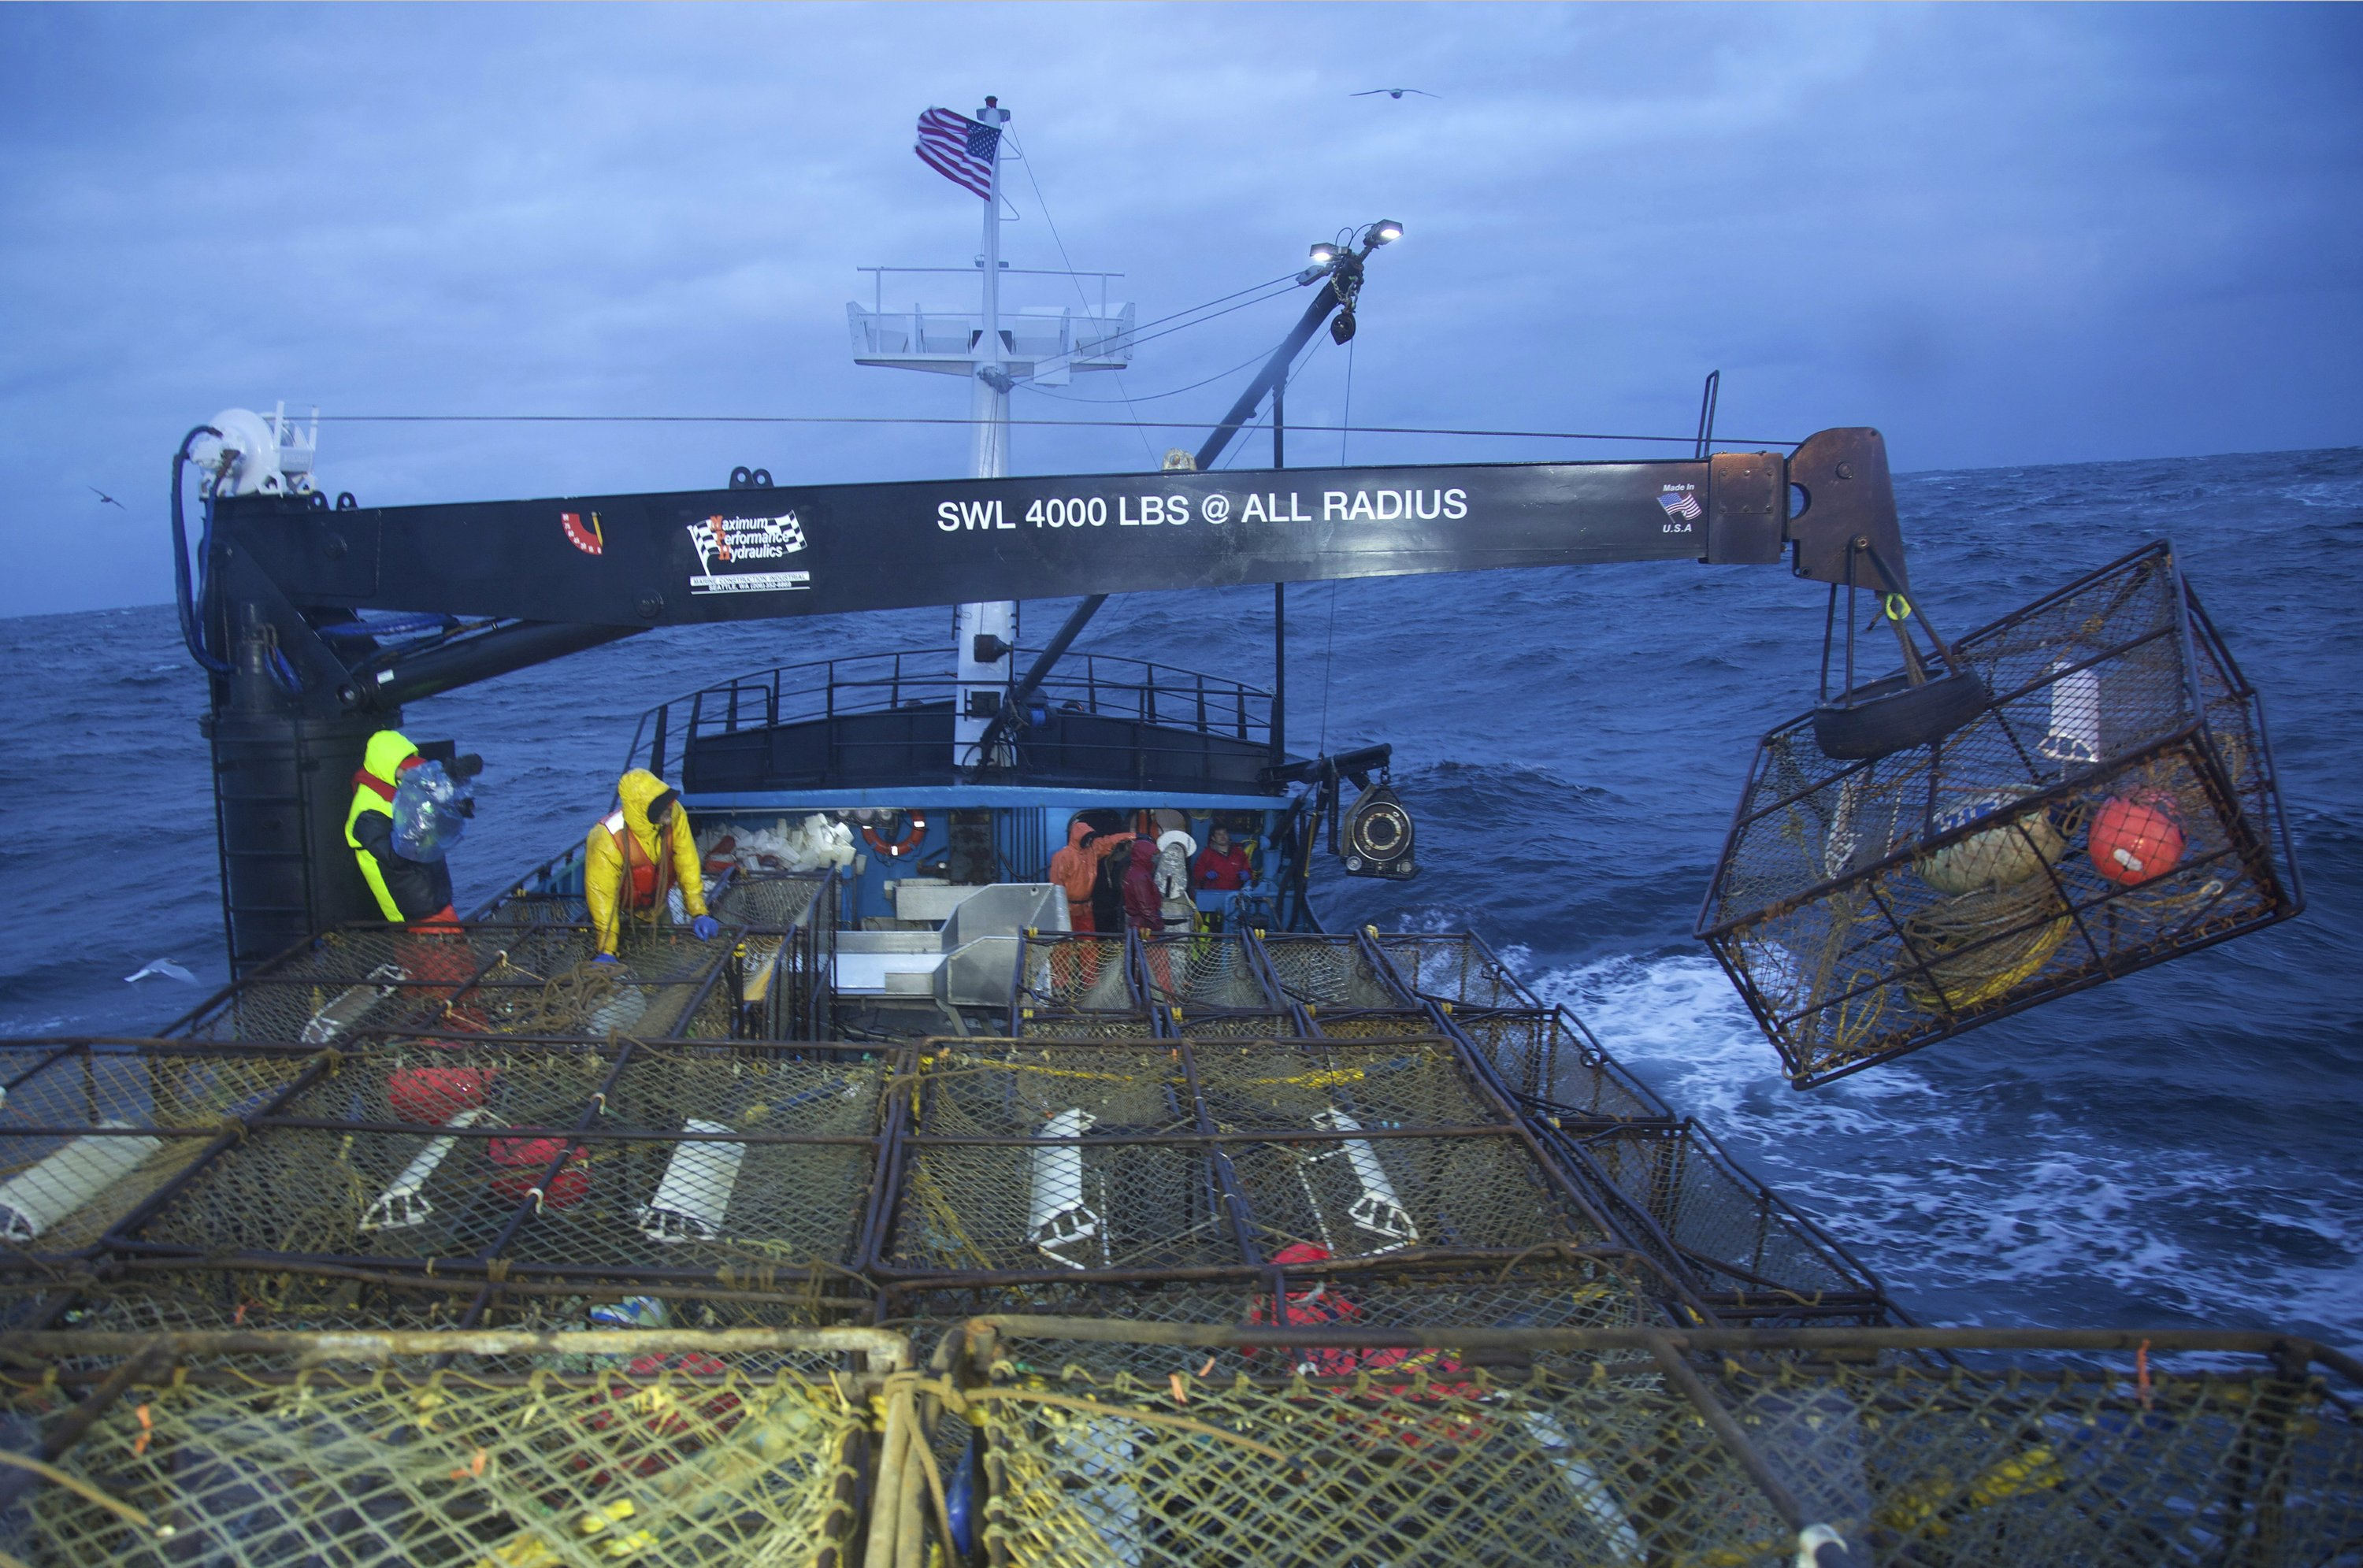 Climate change a character in Discovery's 'Deadliest Catch'